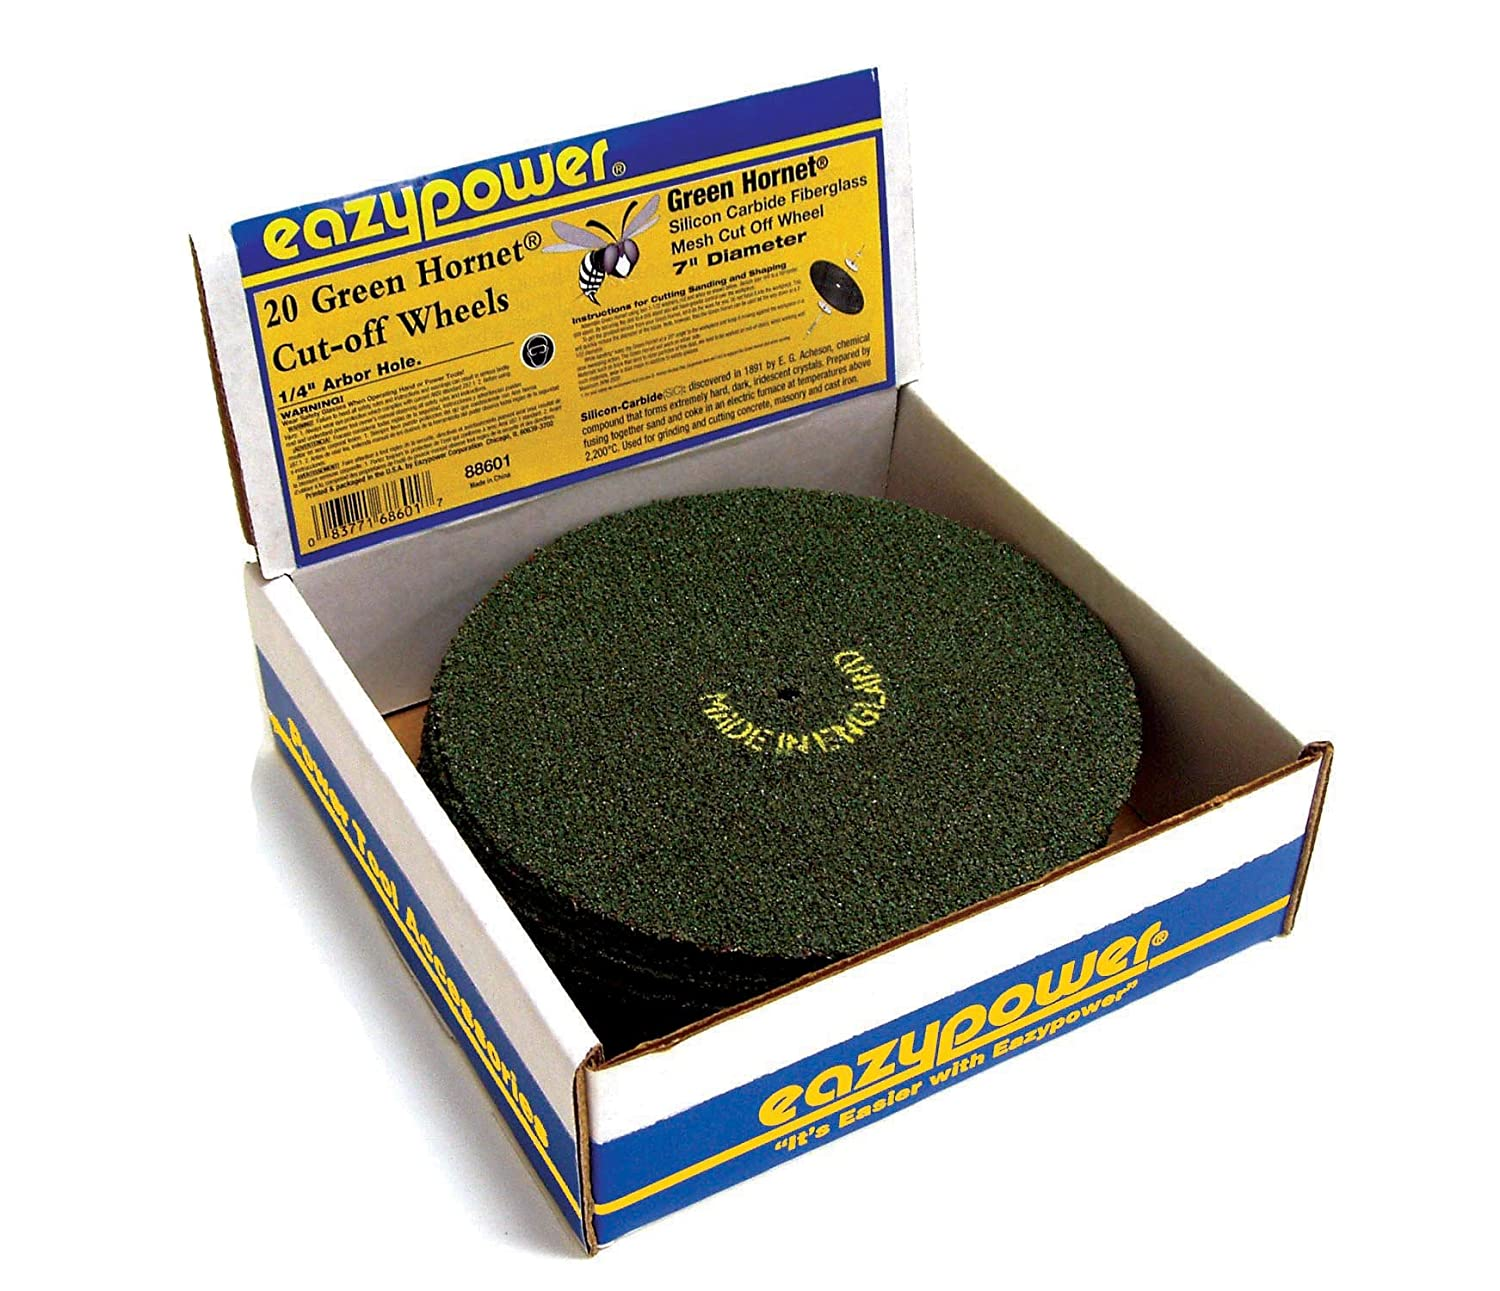 15-Piece Eazy Power Eazypower 88599 7-Inch Aluminum Oxide Cut Off Wheels for Metal